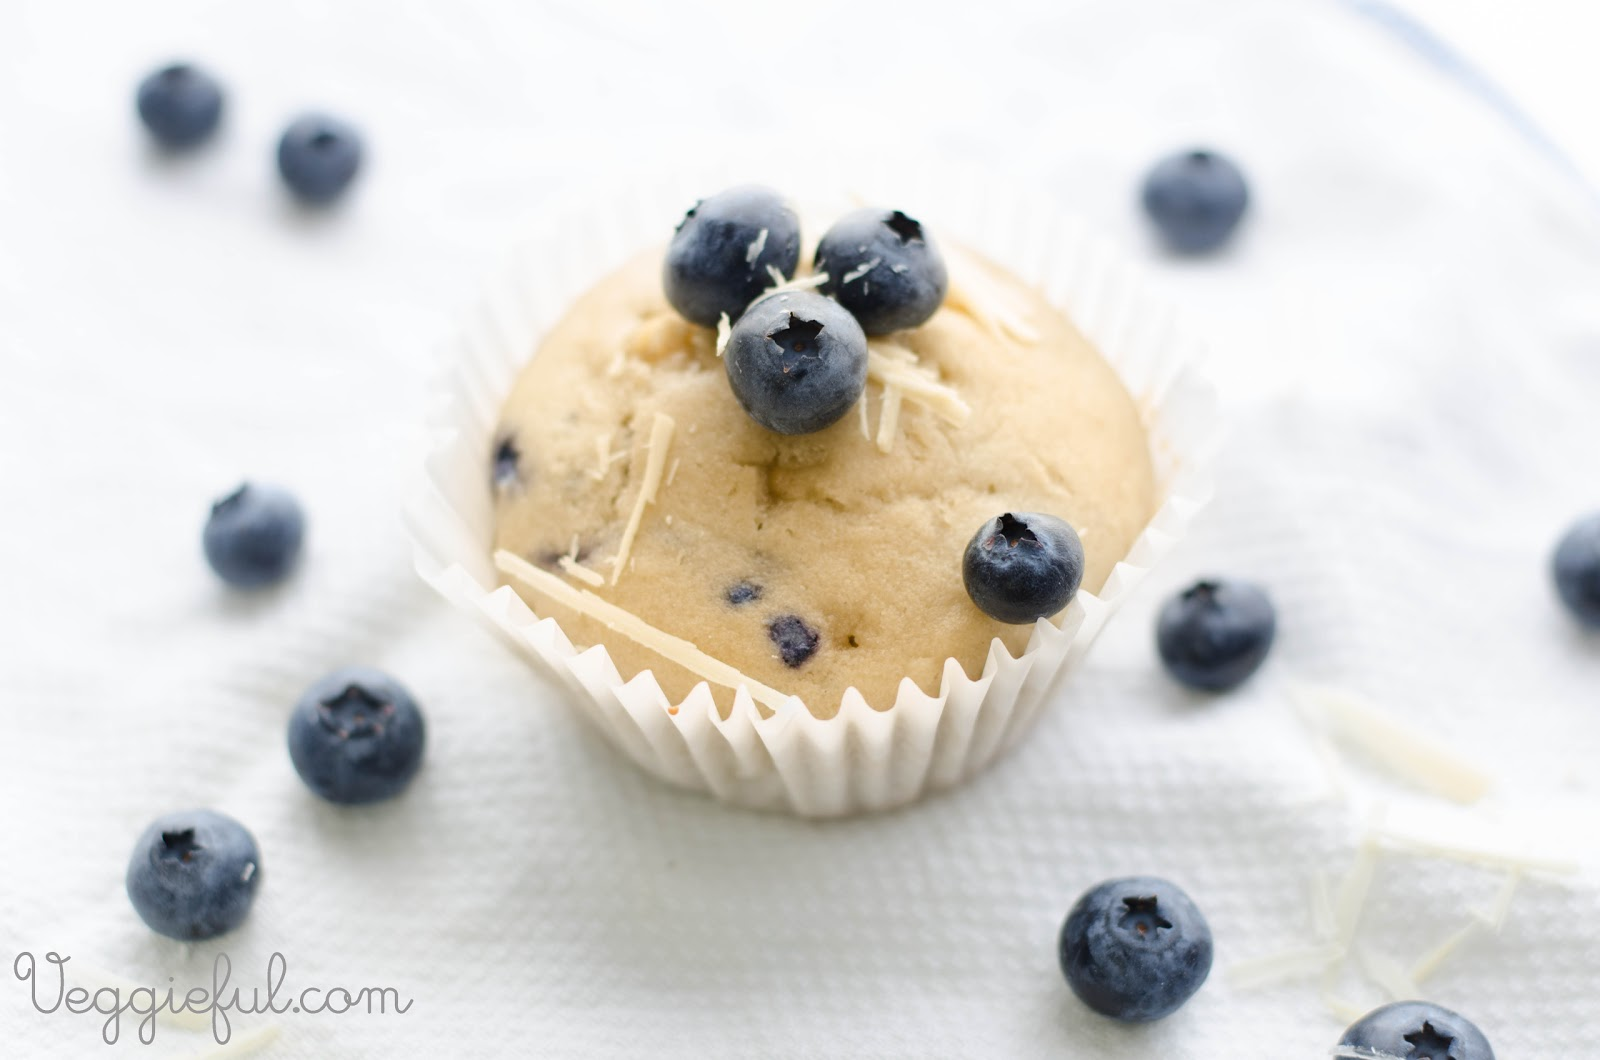 Veggieful: Vegan Blueberry and White Chocolate Cupcakes